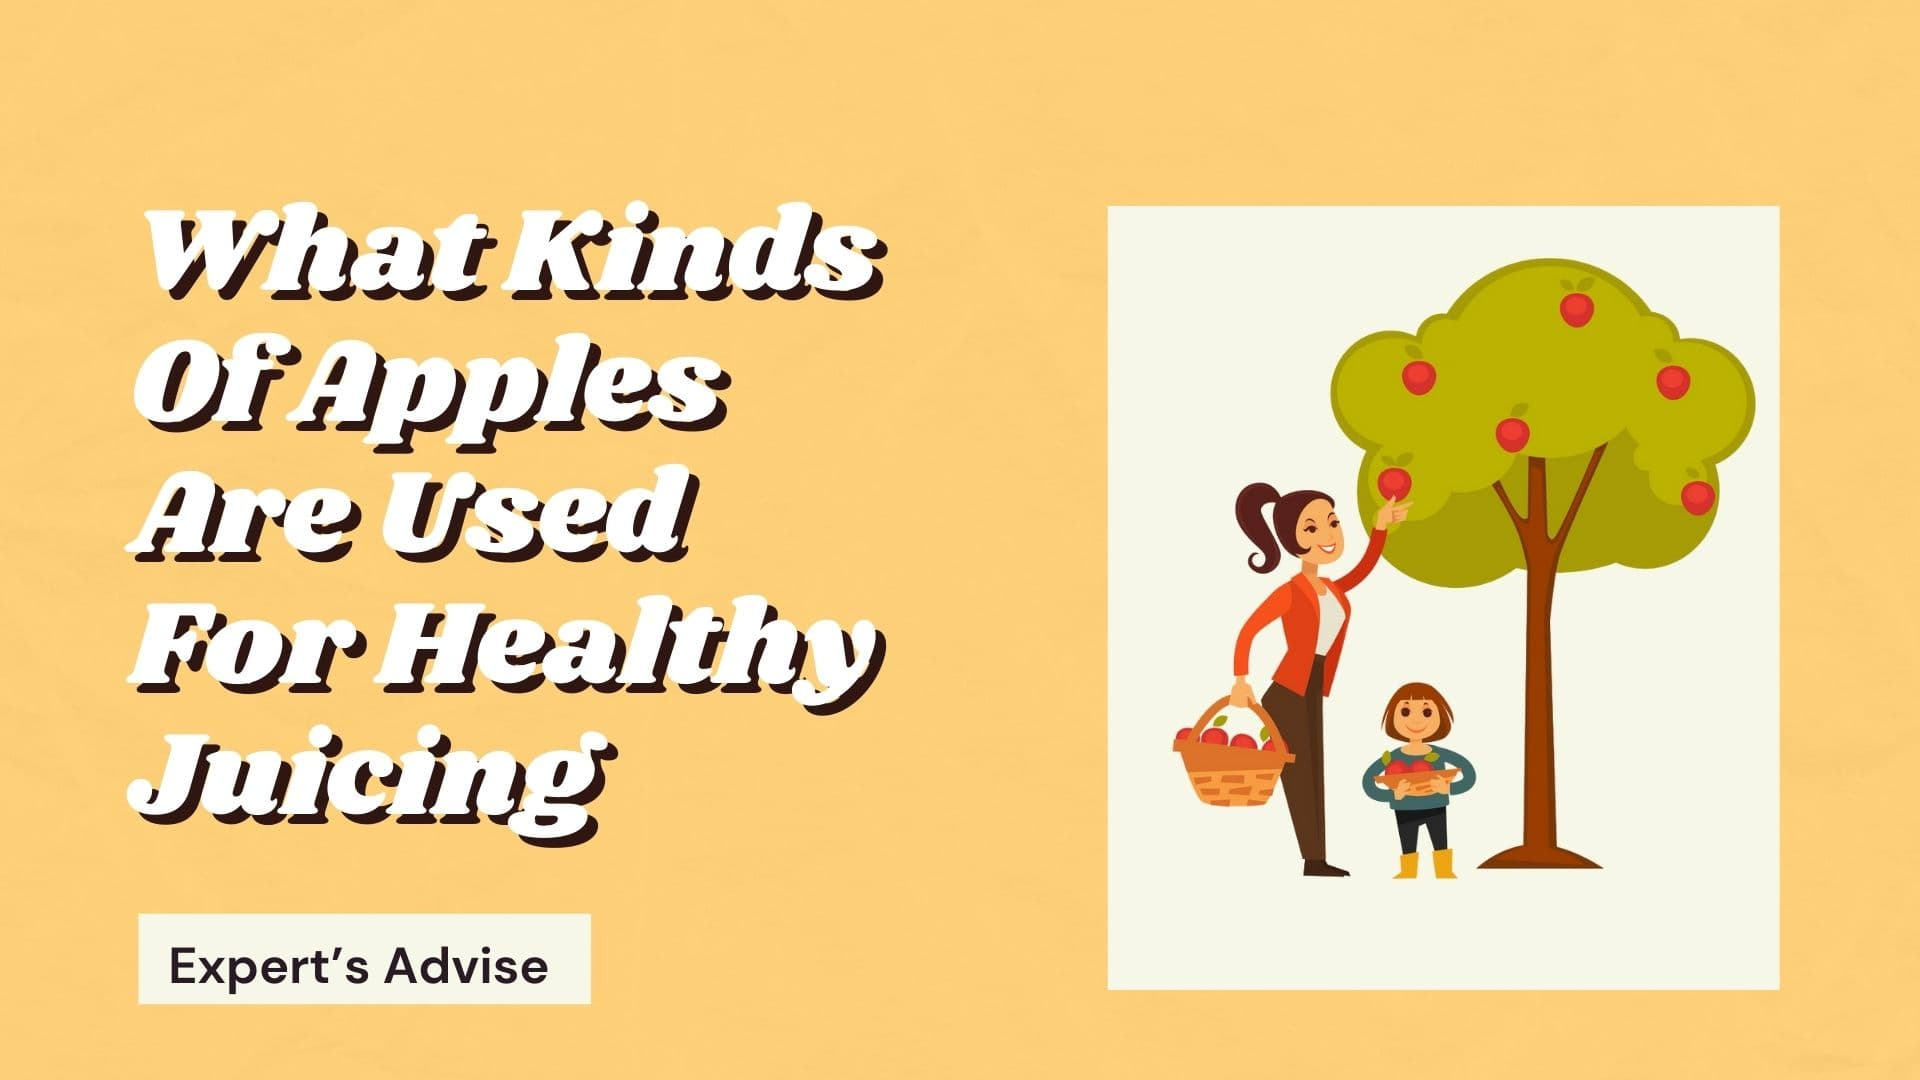 What Kinds Of Apples Are Used For Healthy Juicing? Expert's Advise